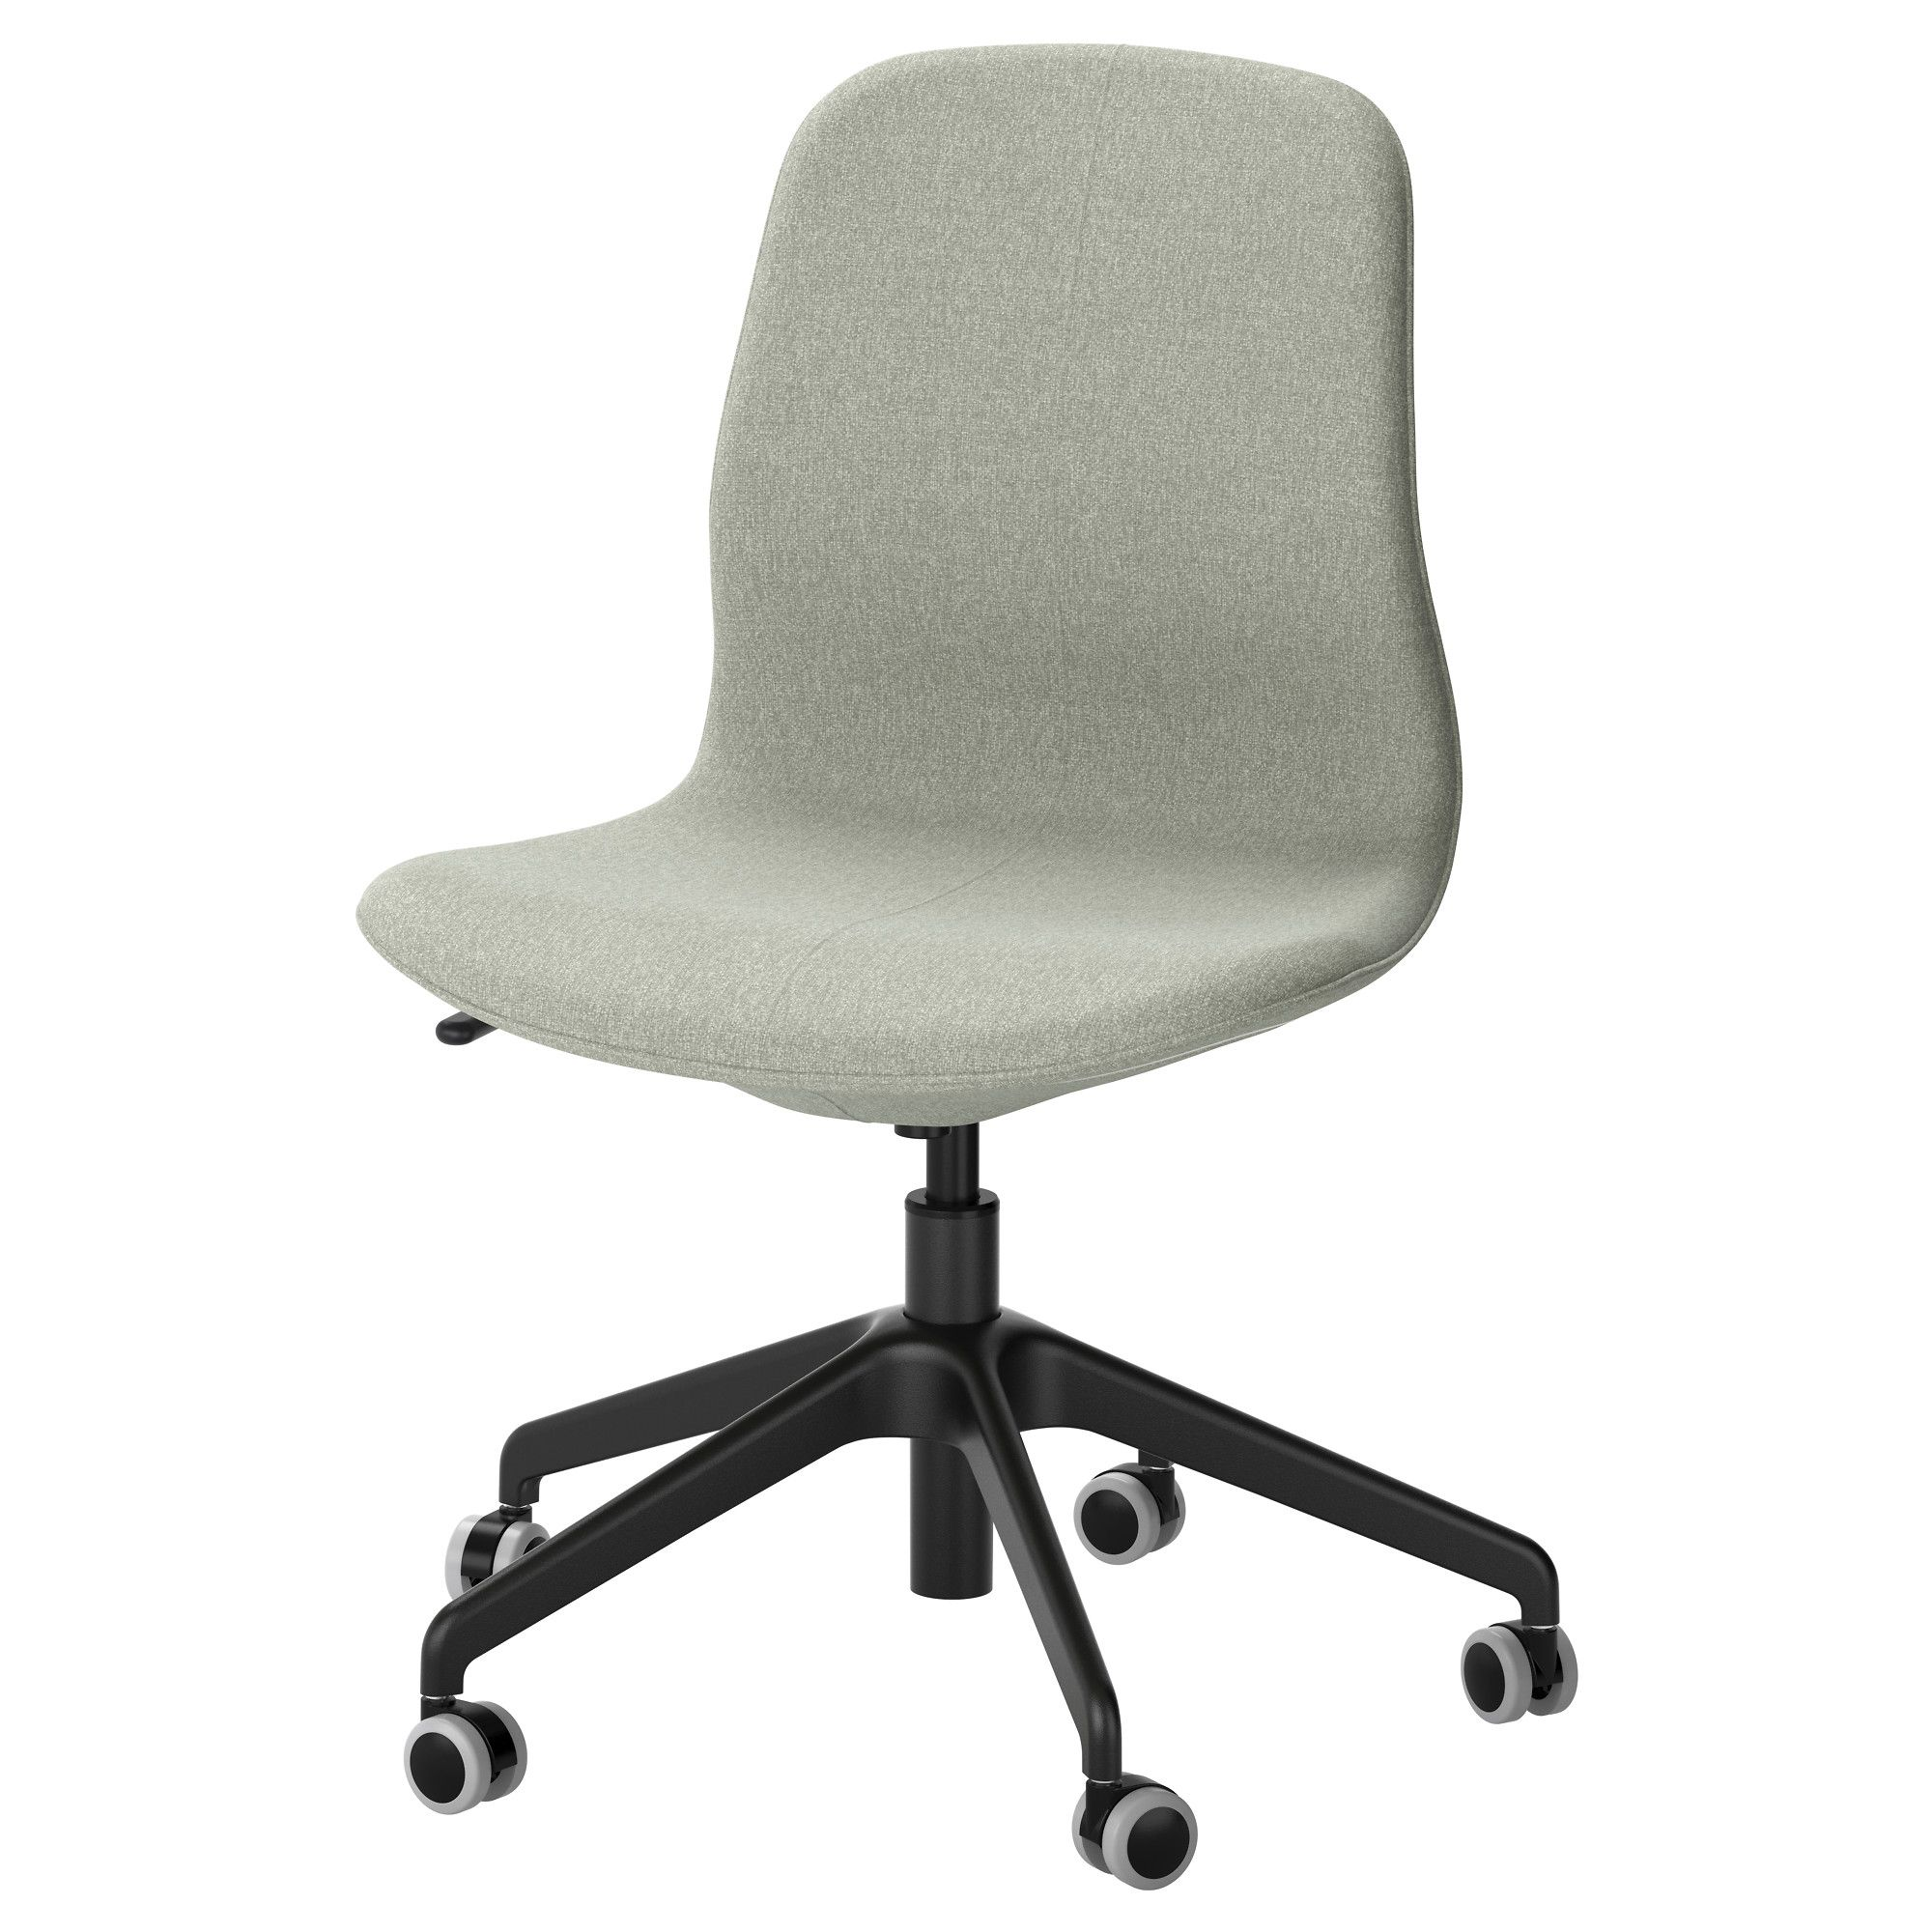 Langfjall Swivel Chairs Ikea Office Chair Used Office Chairs